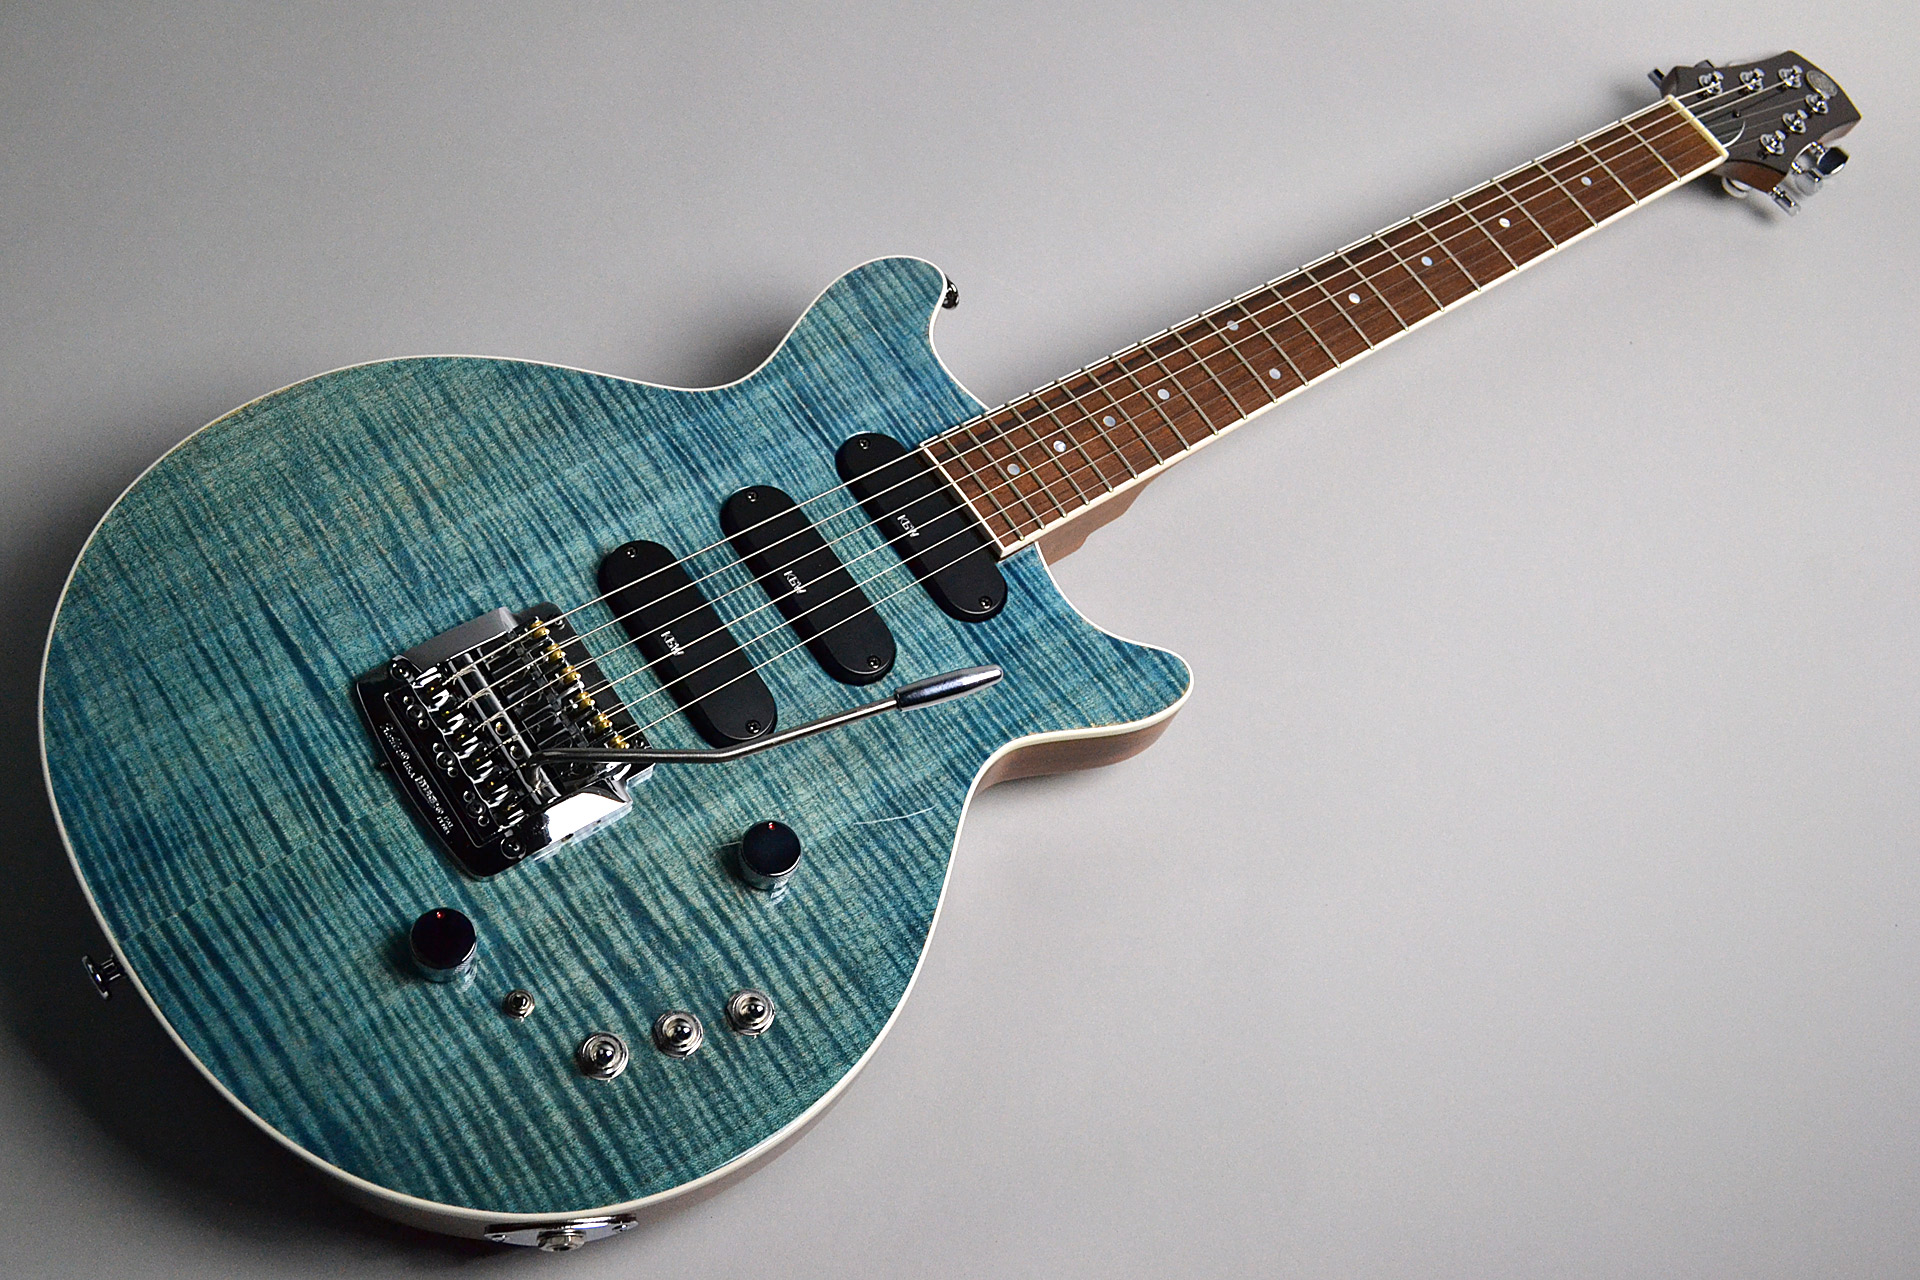 Kz One Solid 3S23 Kahler Figured Maple Blue Denim